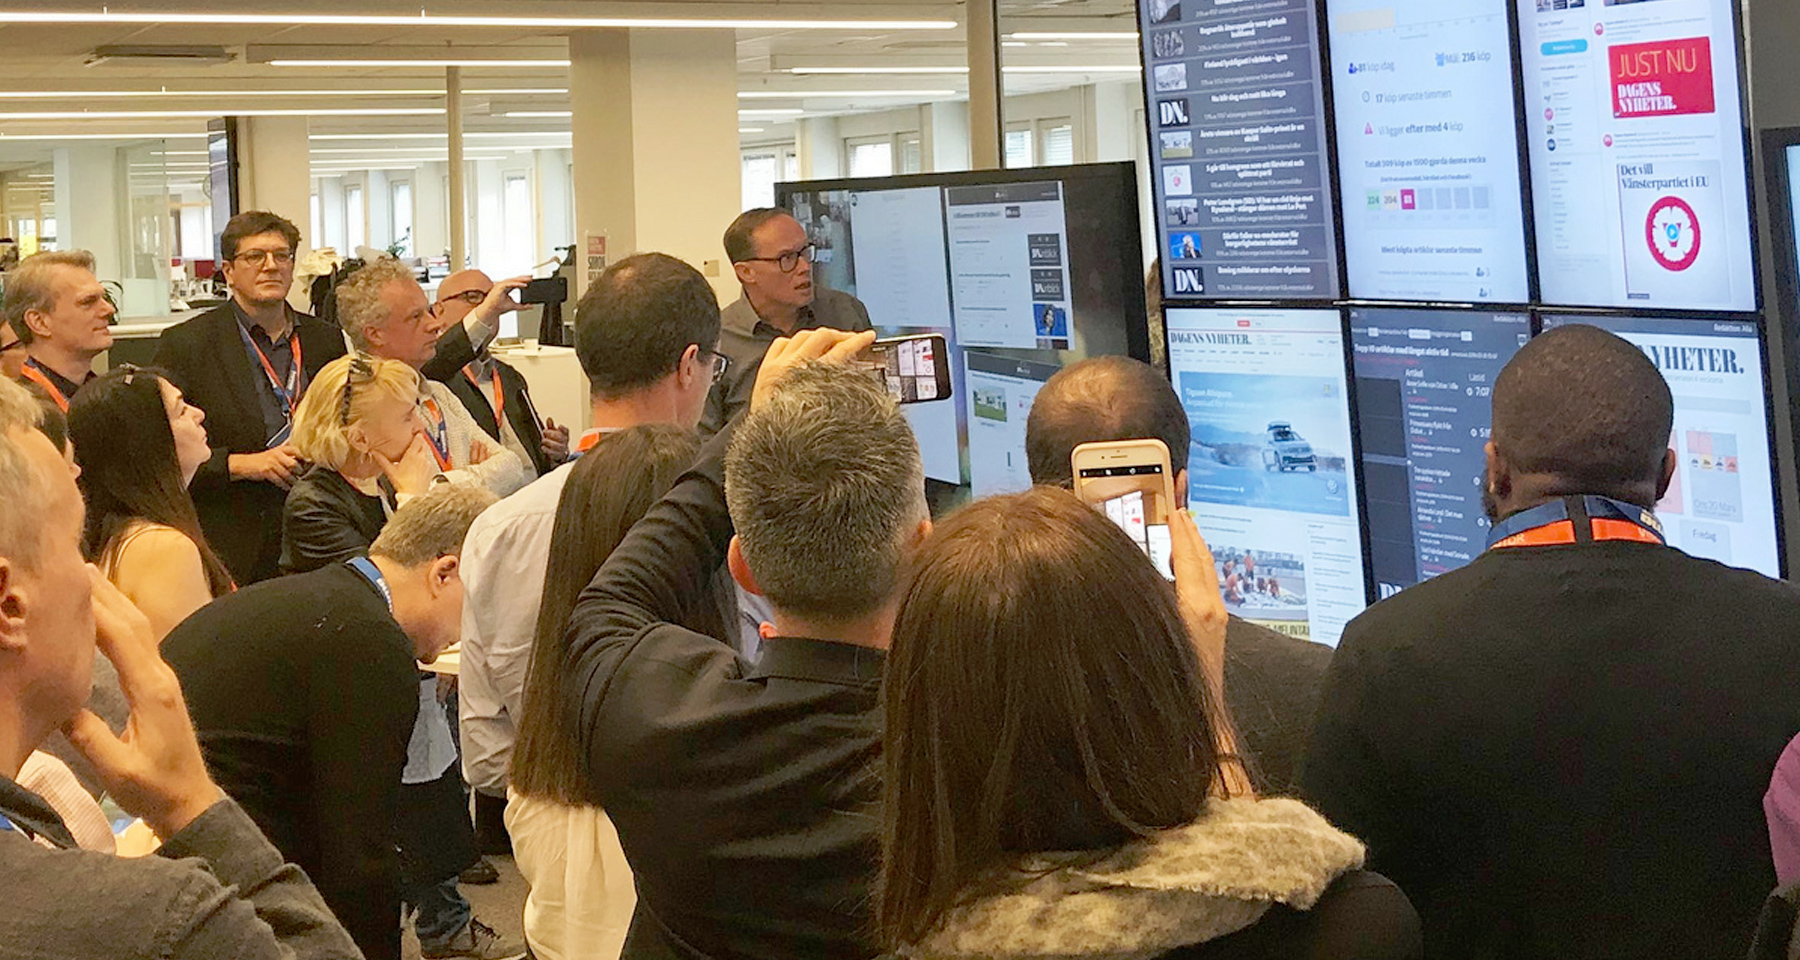 INMA Stockholm study tour gets first-hand look at data in newsrooms